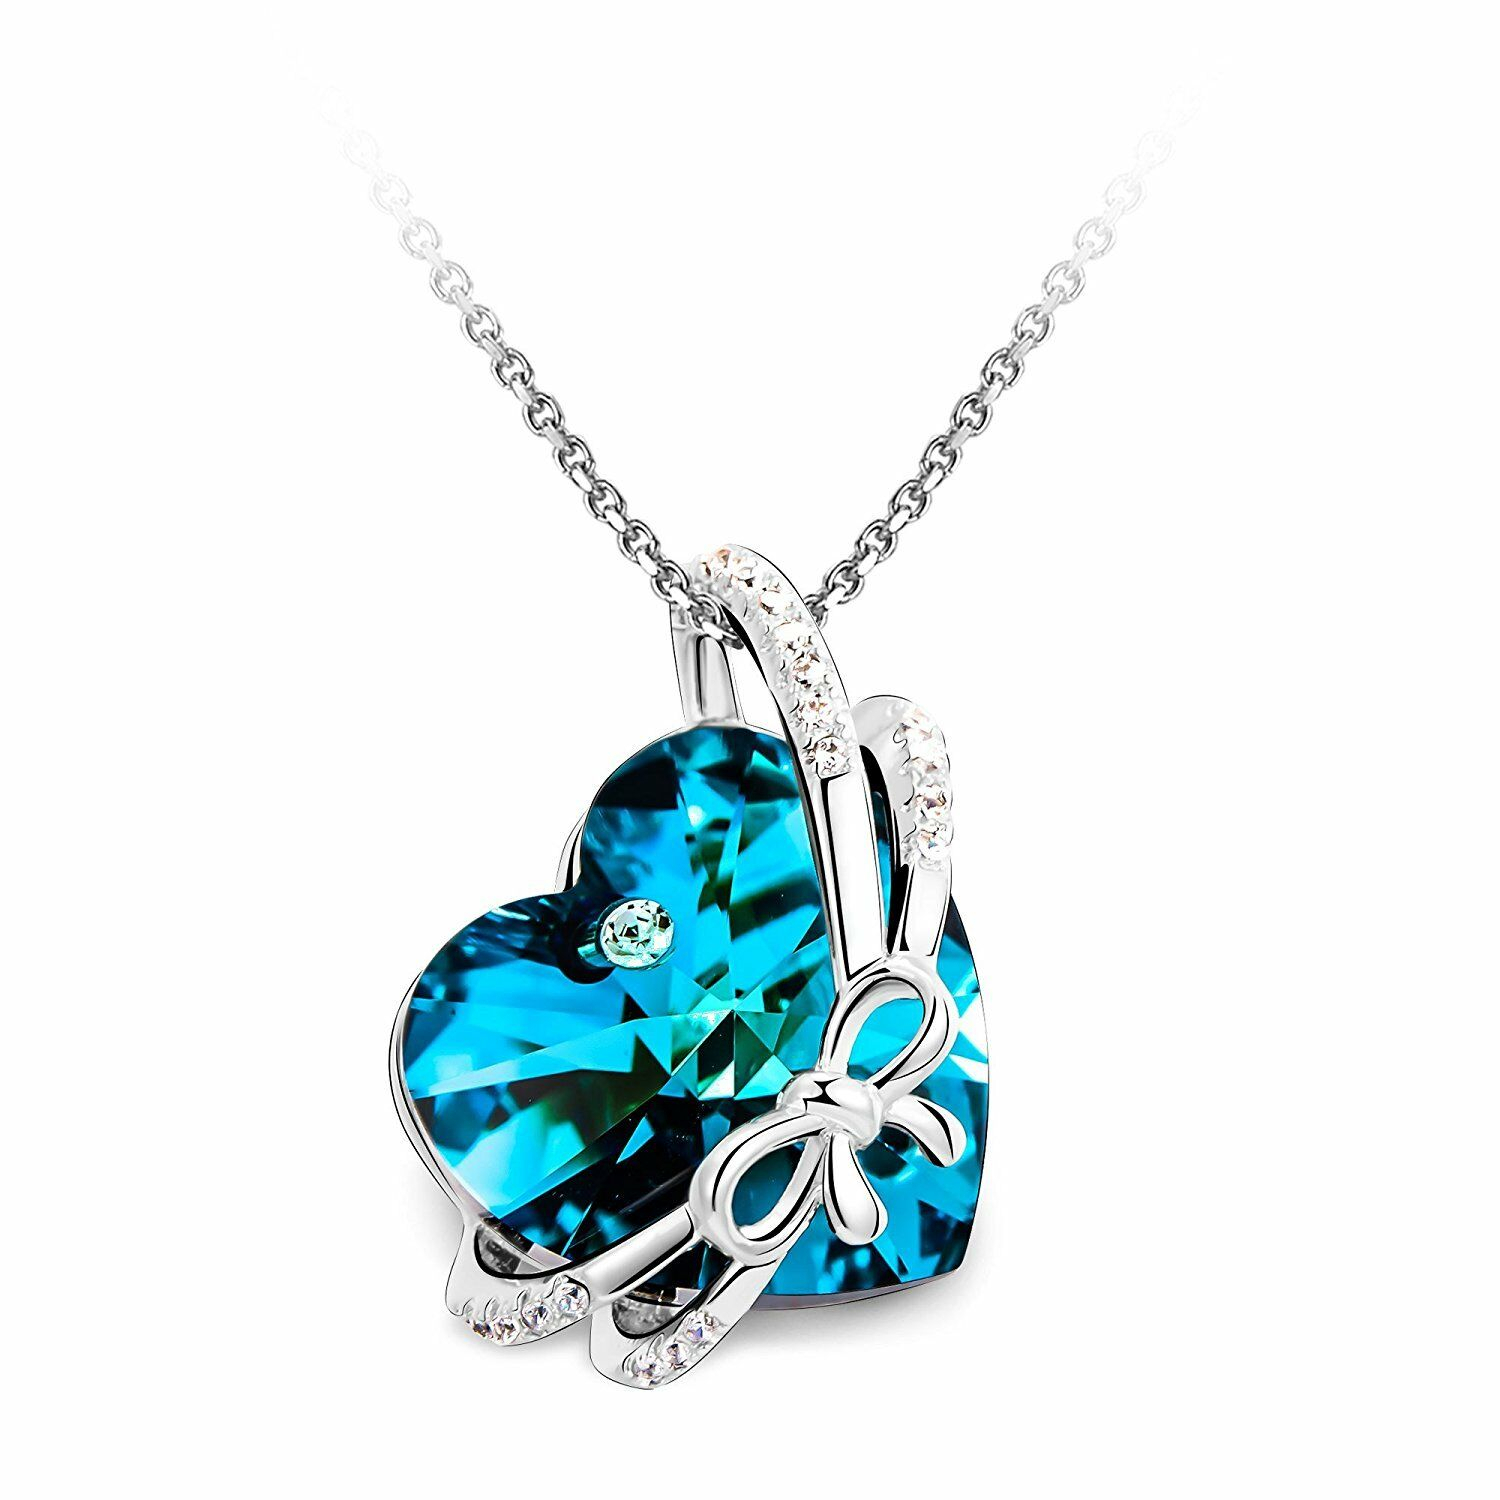 Bowtie Knot Heart Pendant Necklace – Women Lady Wife Girlfriend Birthday  Gifts Within Most Popular Knotted Heart Pendant Necklaces (Gallery 11 of 25)